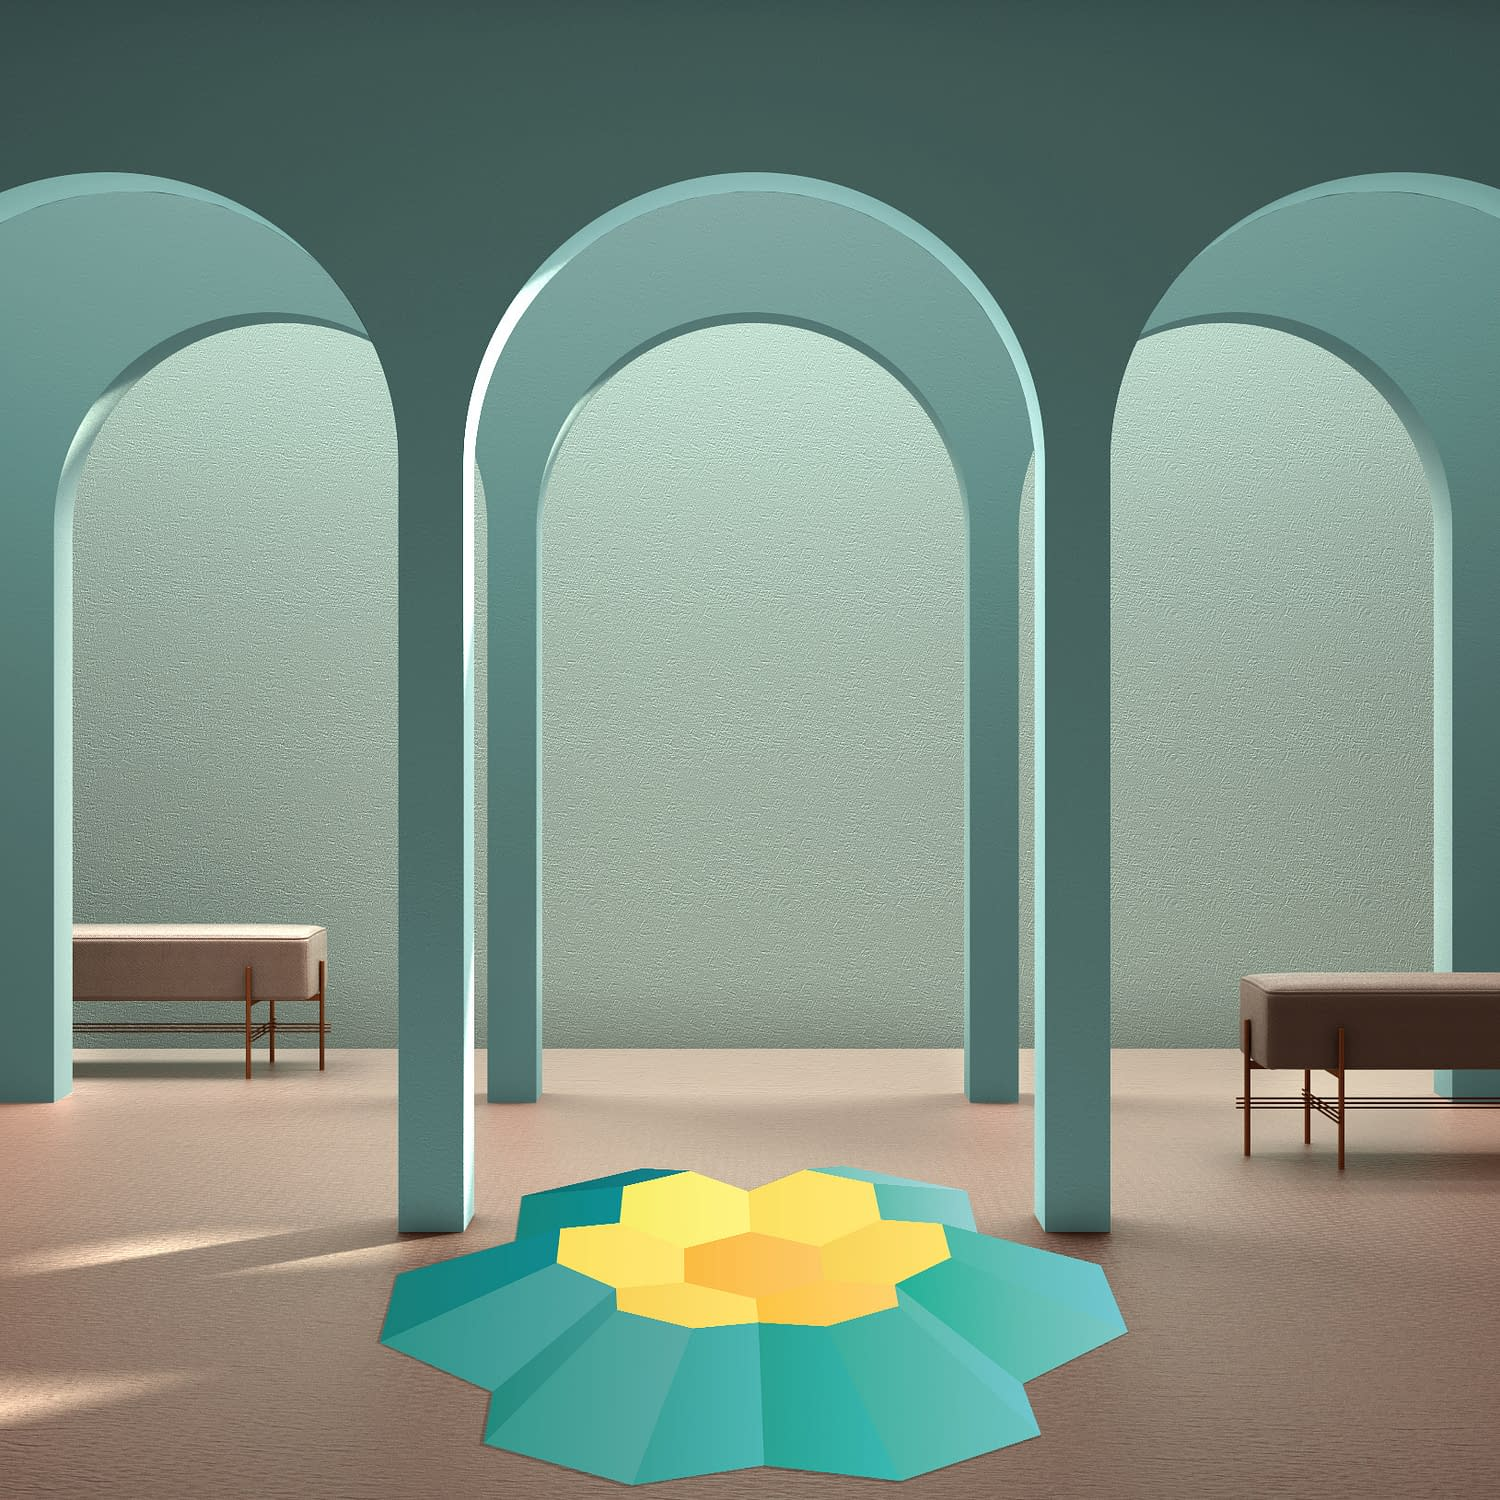 Classic eastern lobby, modern colored hall with stucco walls, interior design archways, empty space with ceramic tiles, bench, sofa, seat, blue background, arches with copy space